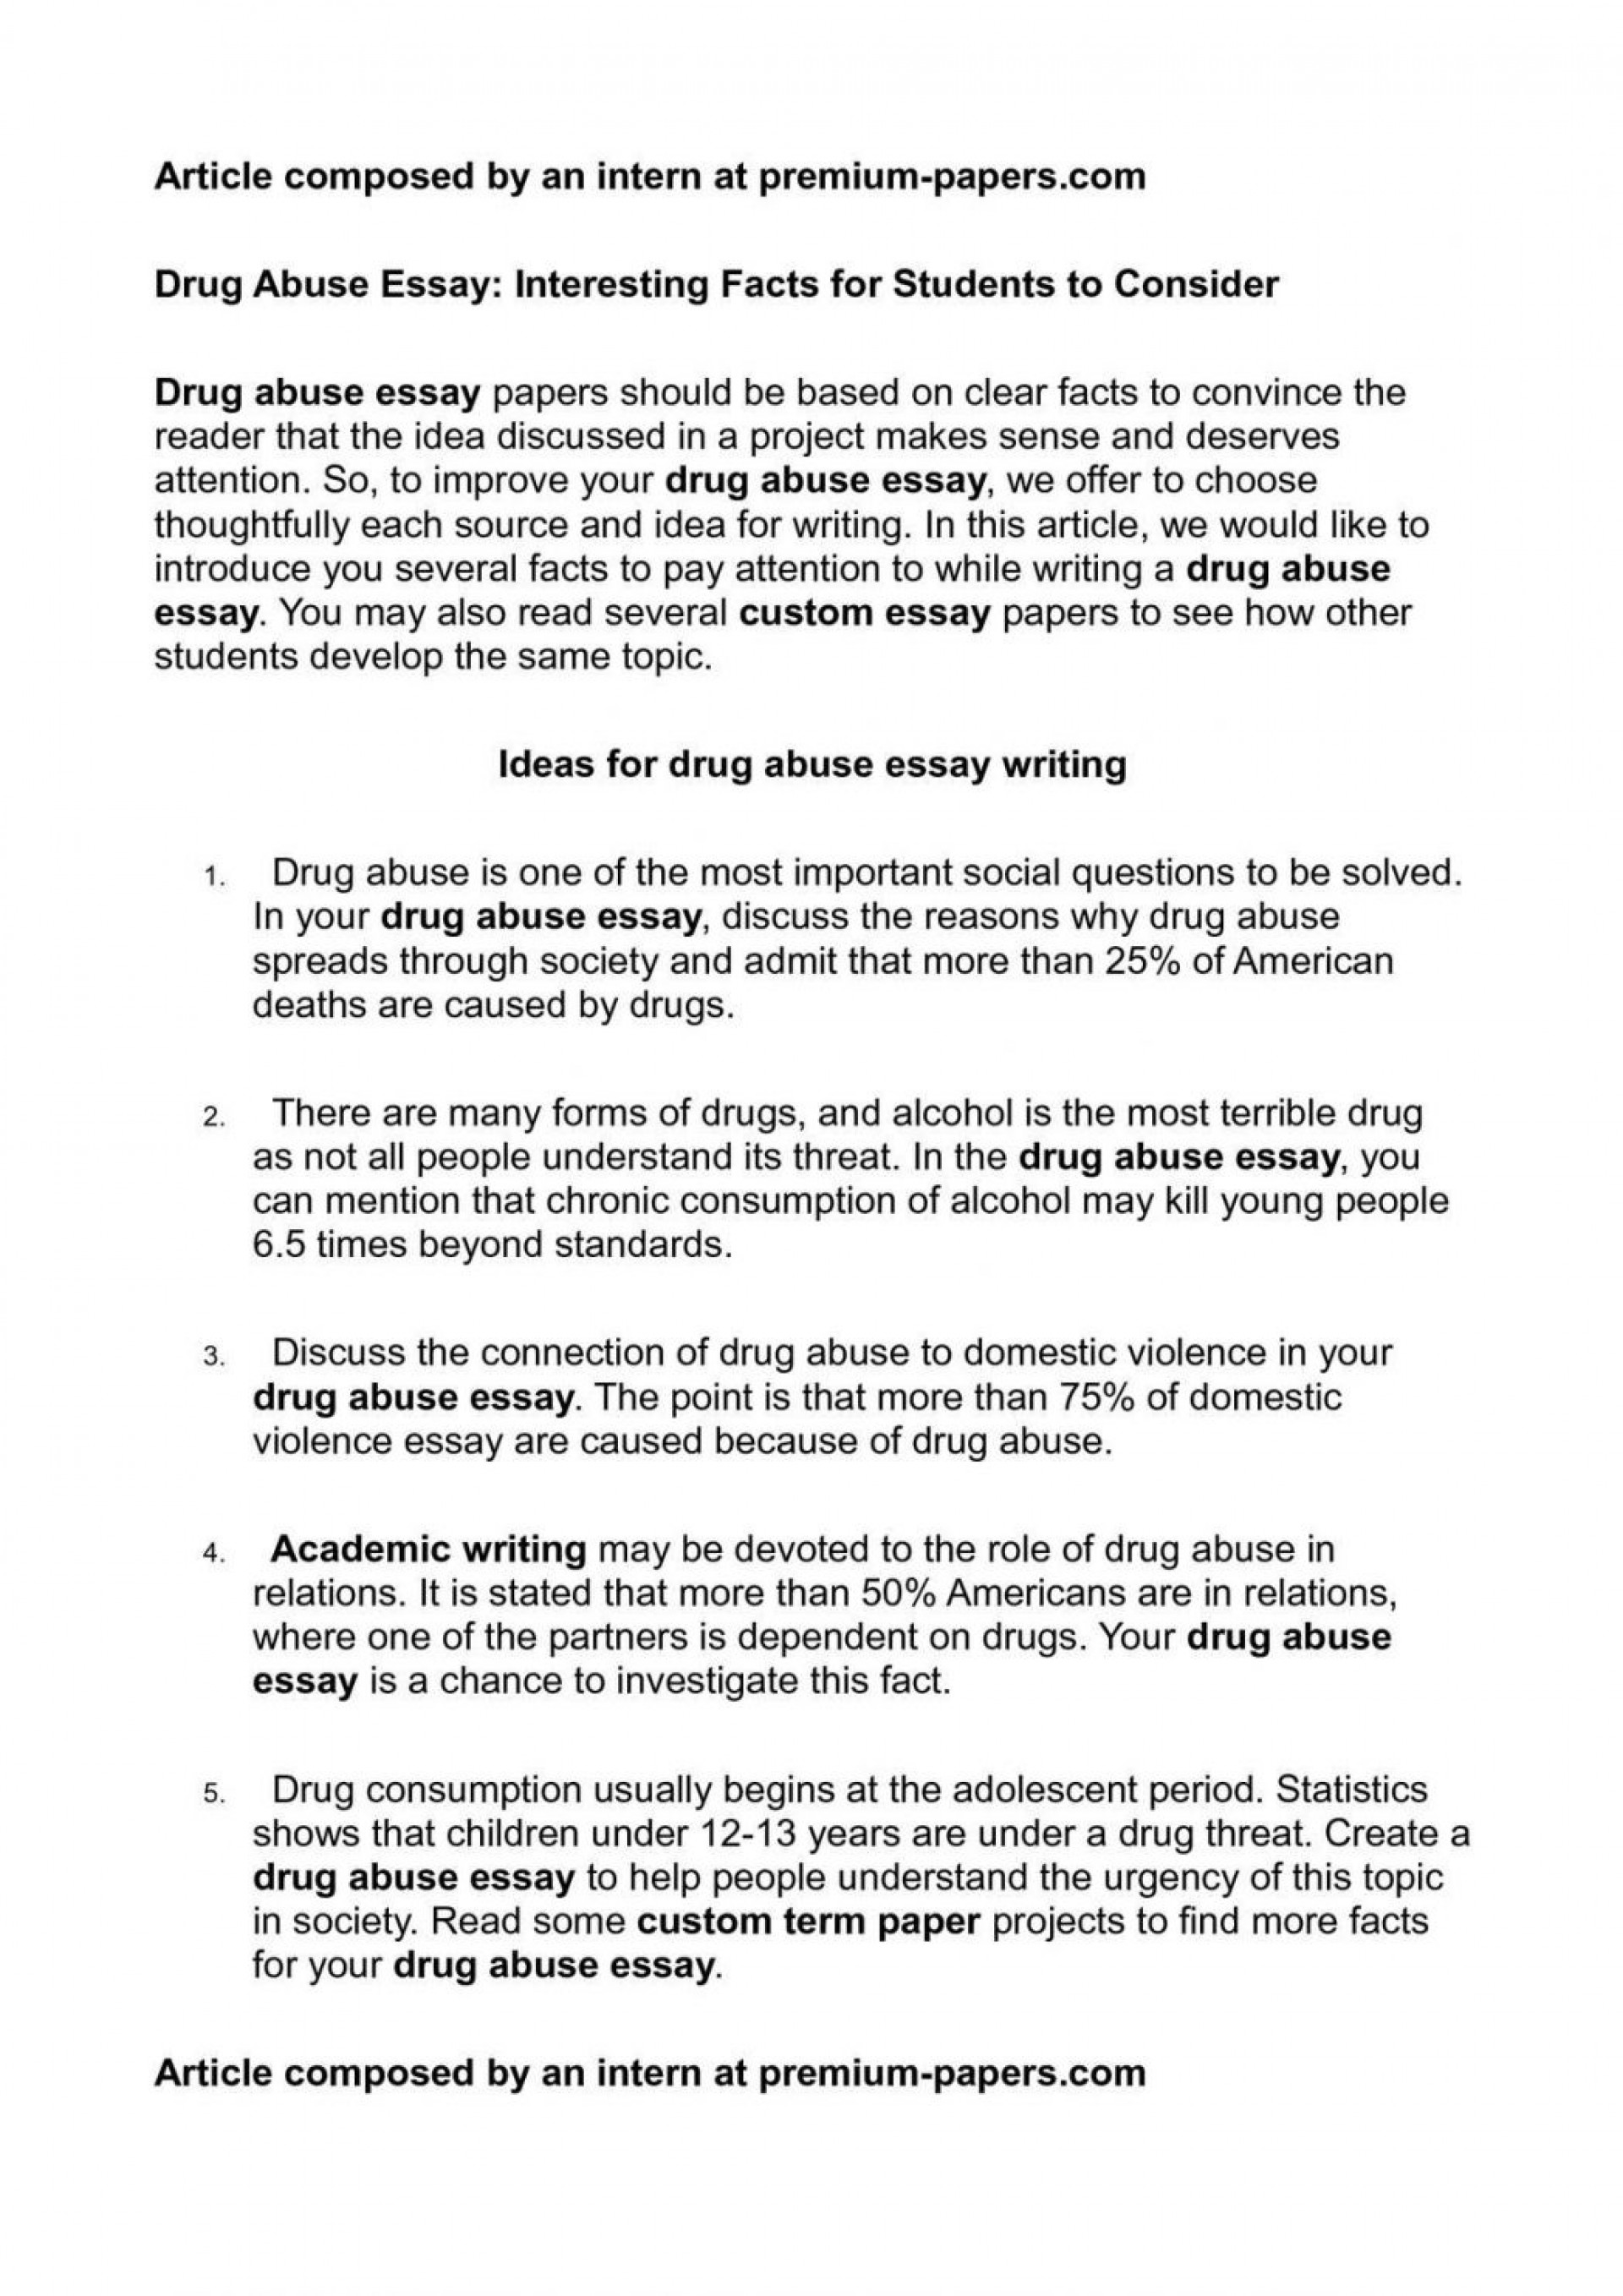 Essay questions on drugs